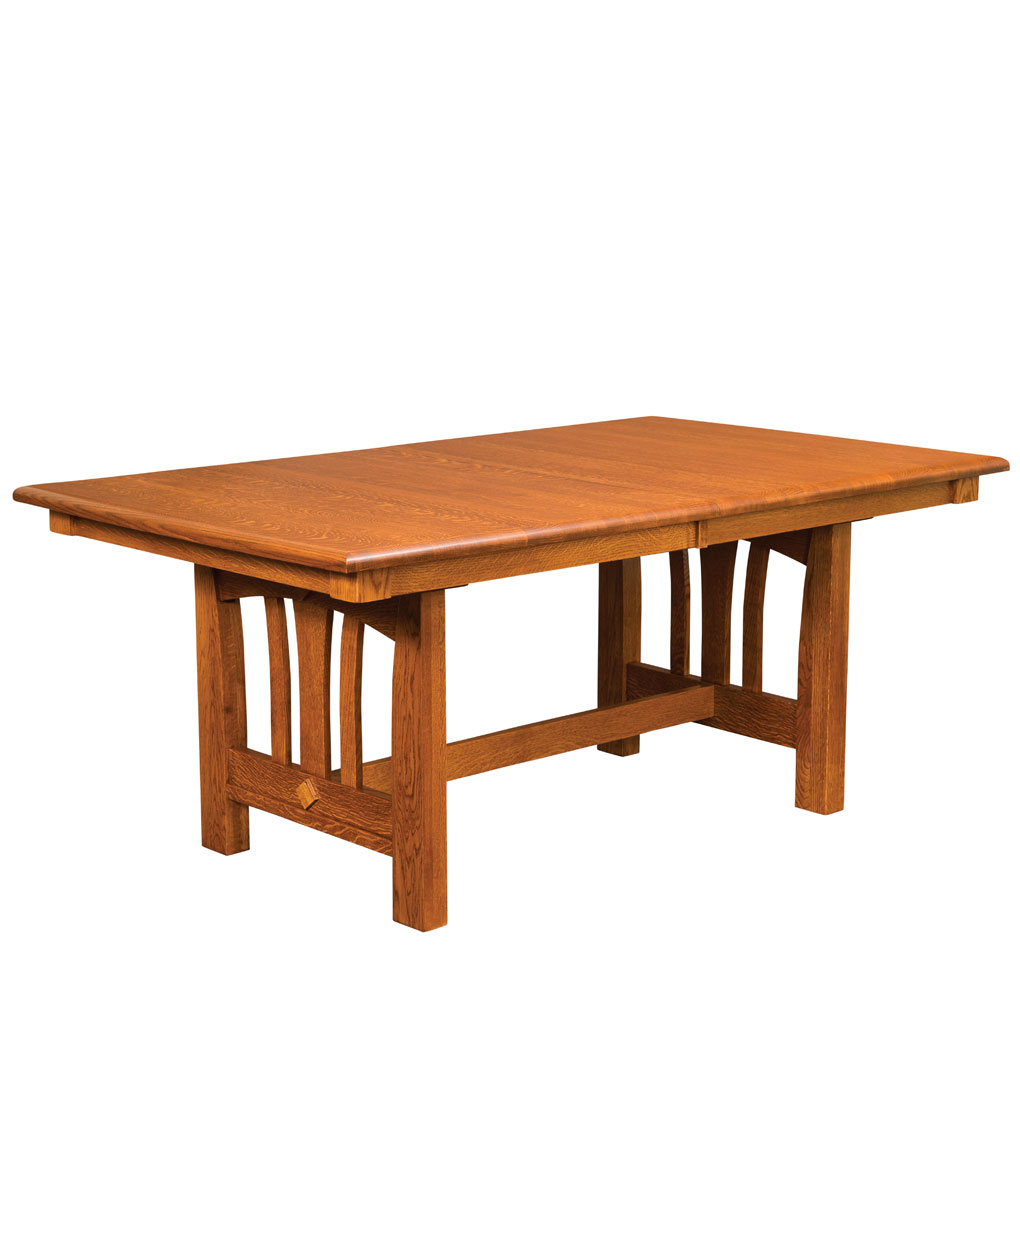 Cedar Round Log Dining Table Real Wood And 50 Similar Items: Amish Direct Furniture